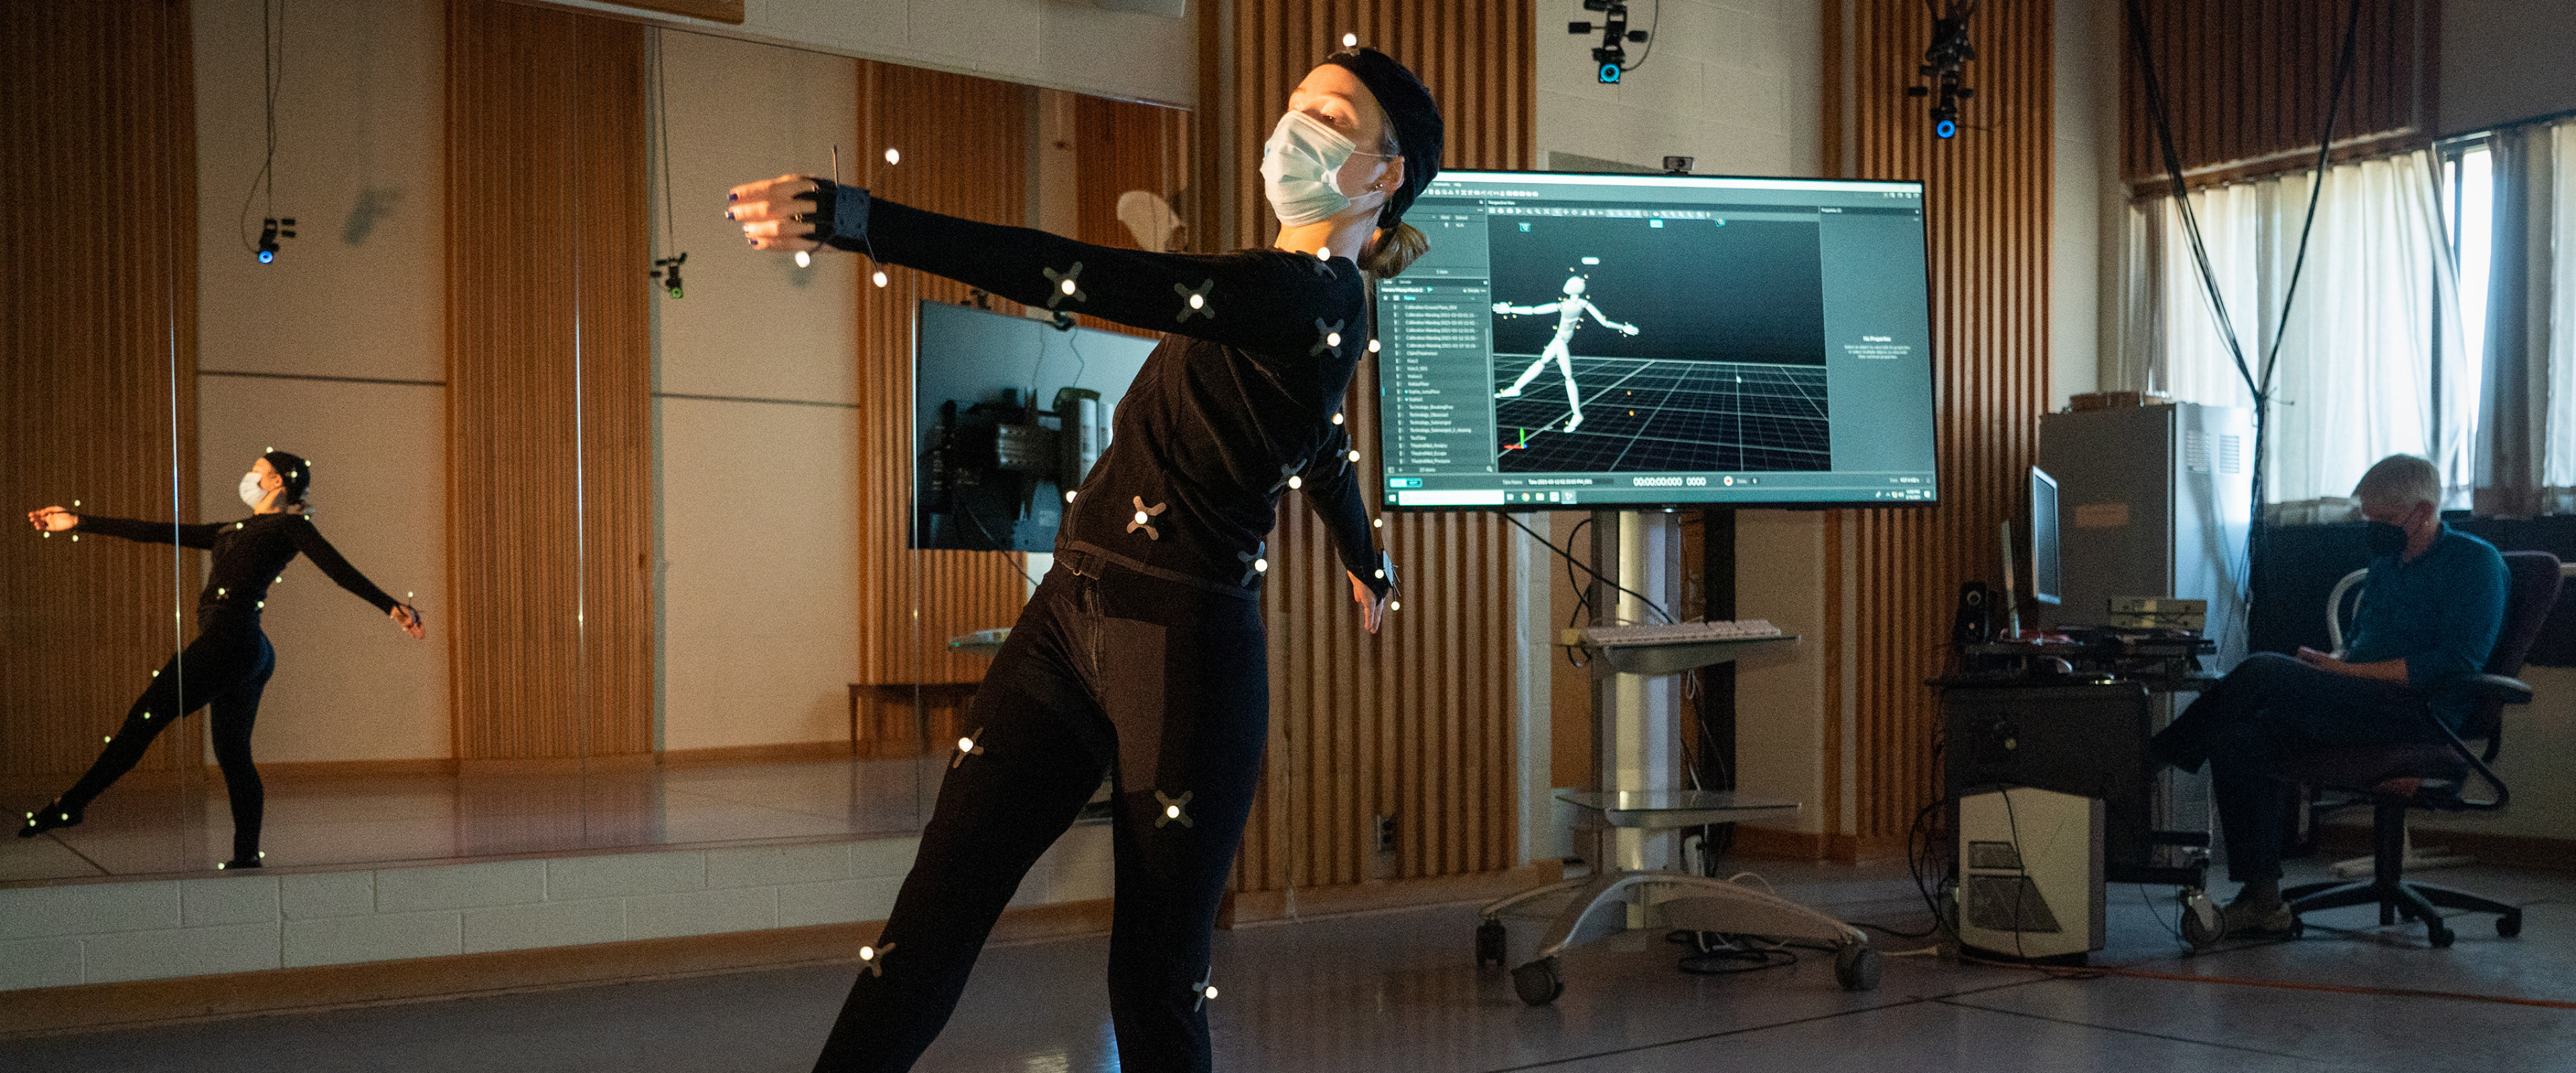 A student wearing a motion capture suit dances in front of a large computer monitor.